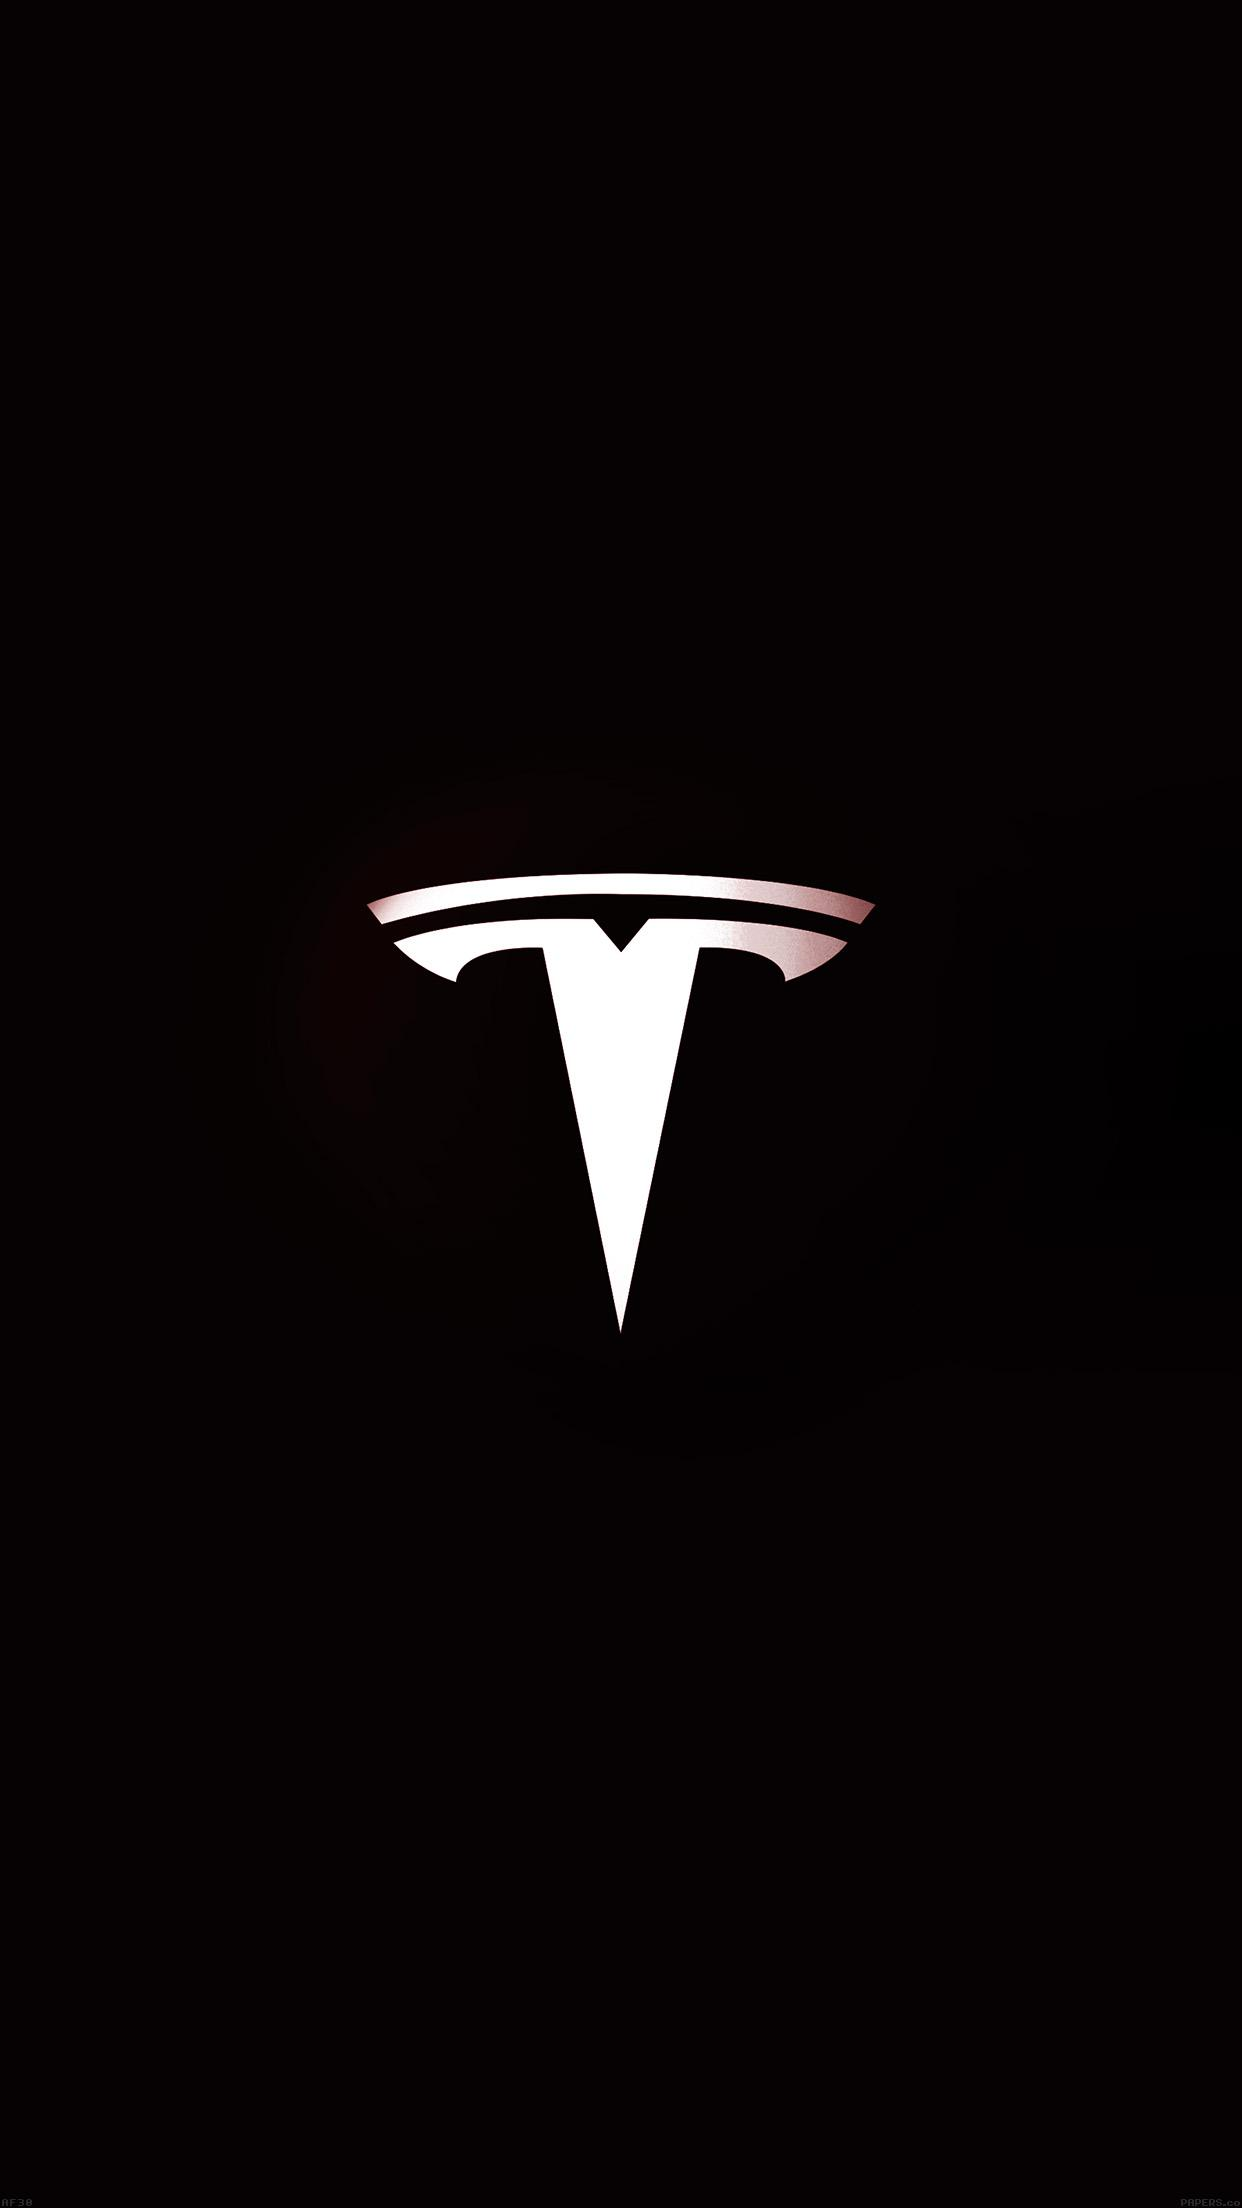 iPhone wallpaper Tesla Motors Logo Dark Les 3Wallpapers iPhone du jour (13/02/2018)